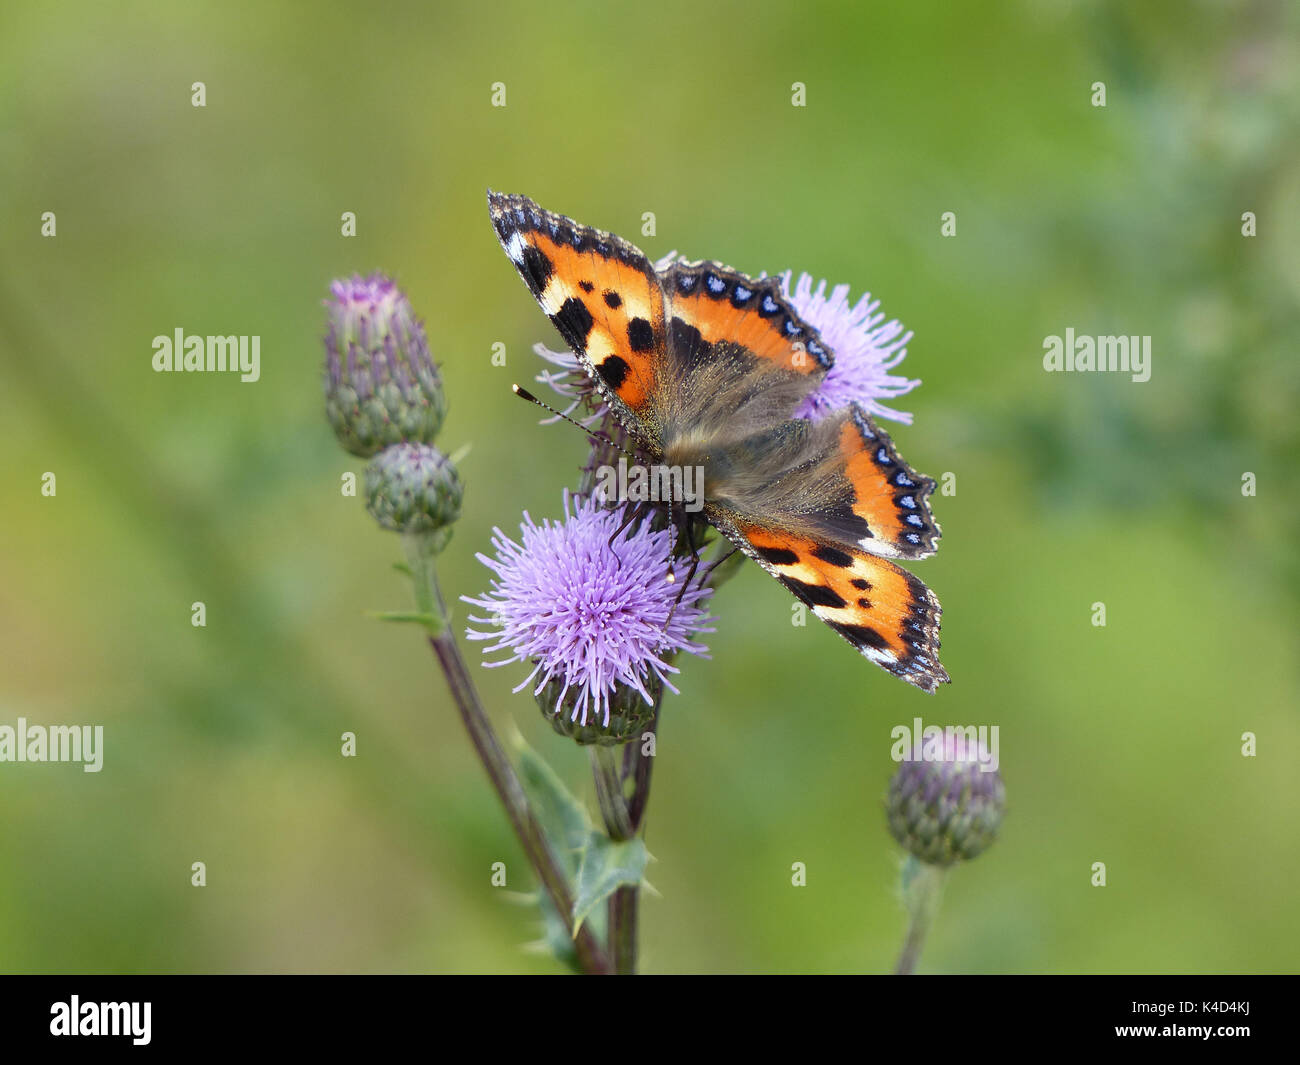 Small Tortoiseshell Aglais Urticae On Plume Thistle Flower Cirsium Arvense, Green Background - Stock Image